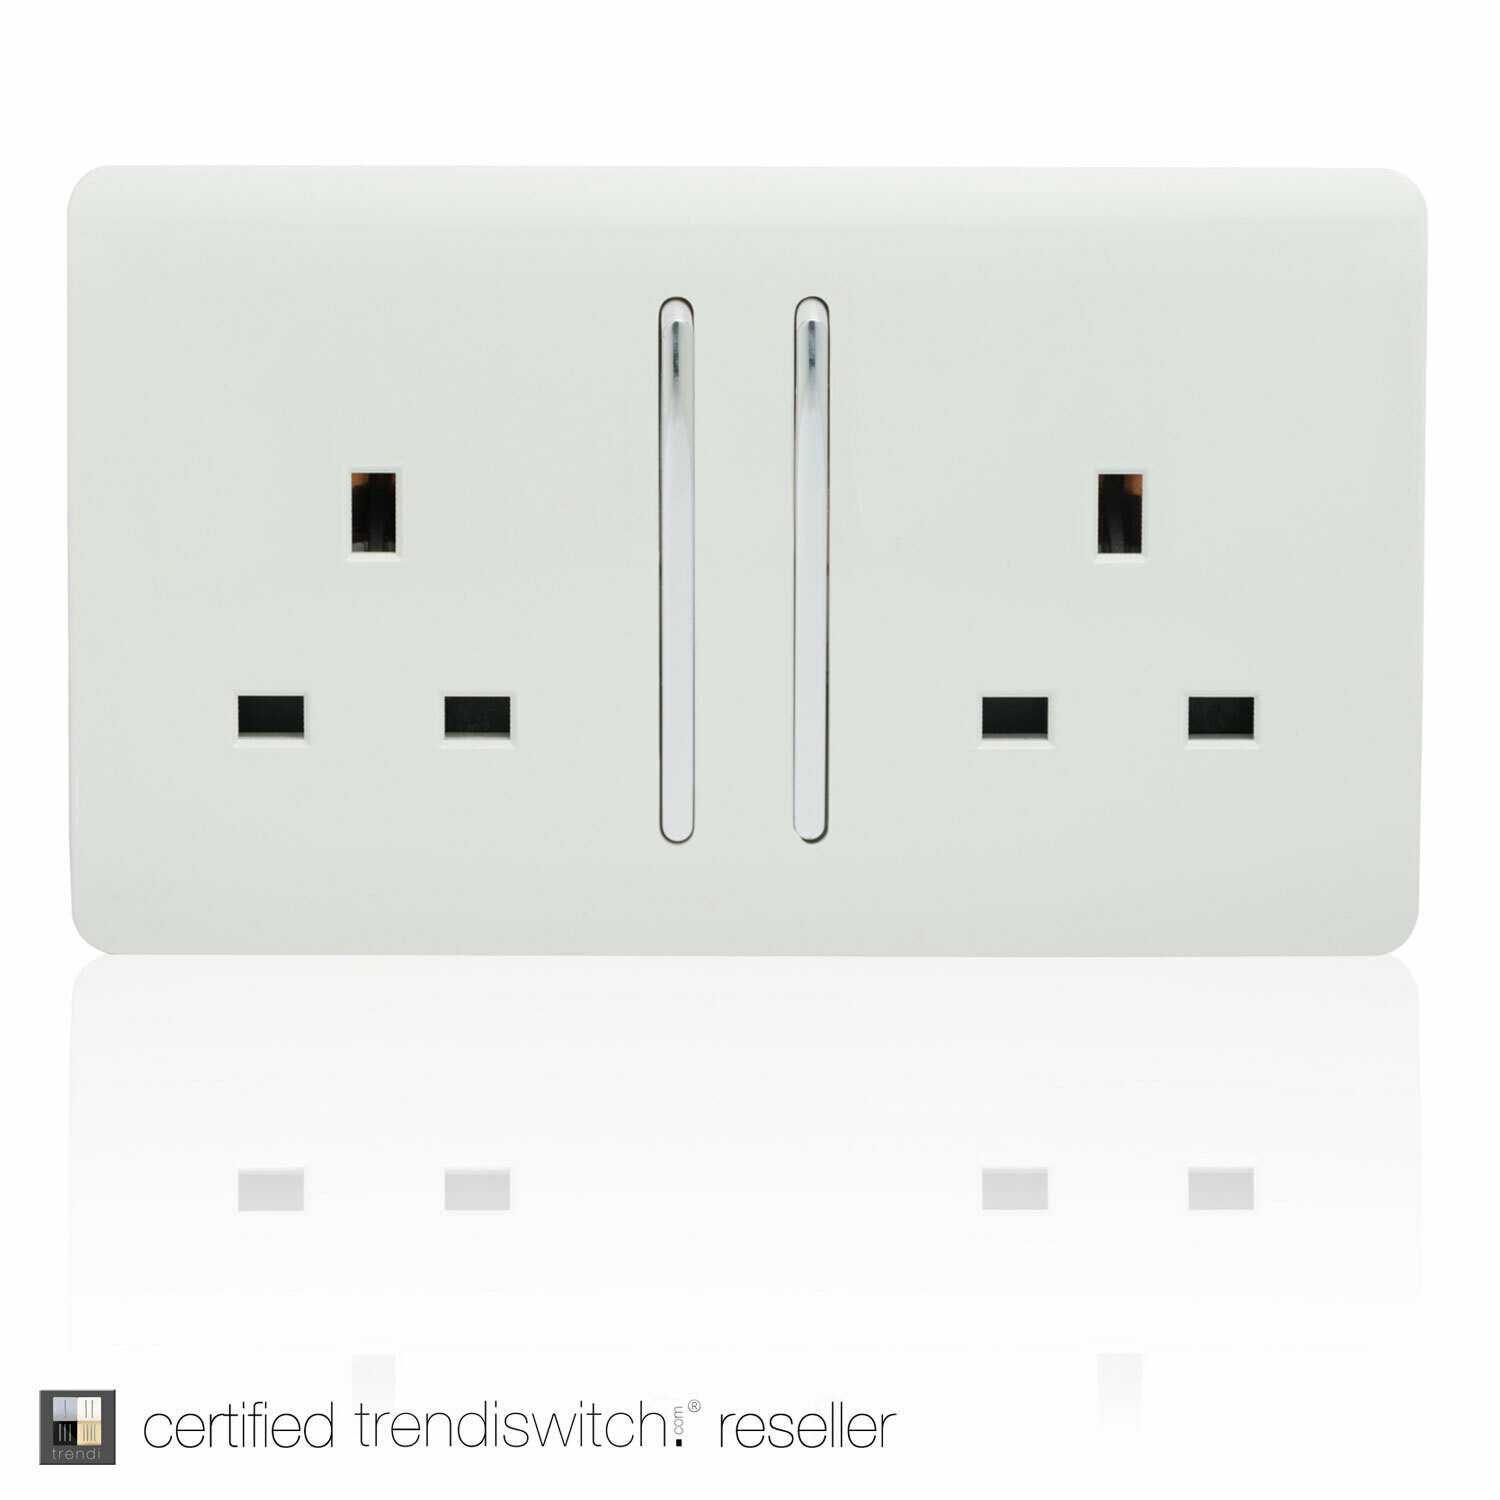 Trendi, Artistic Modern 2 Gang 13Amp Long Switched Double Socket Gloss White Finish, BRITISH MADE, 5yrs warranty